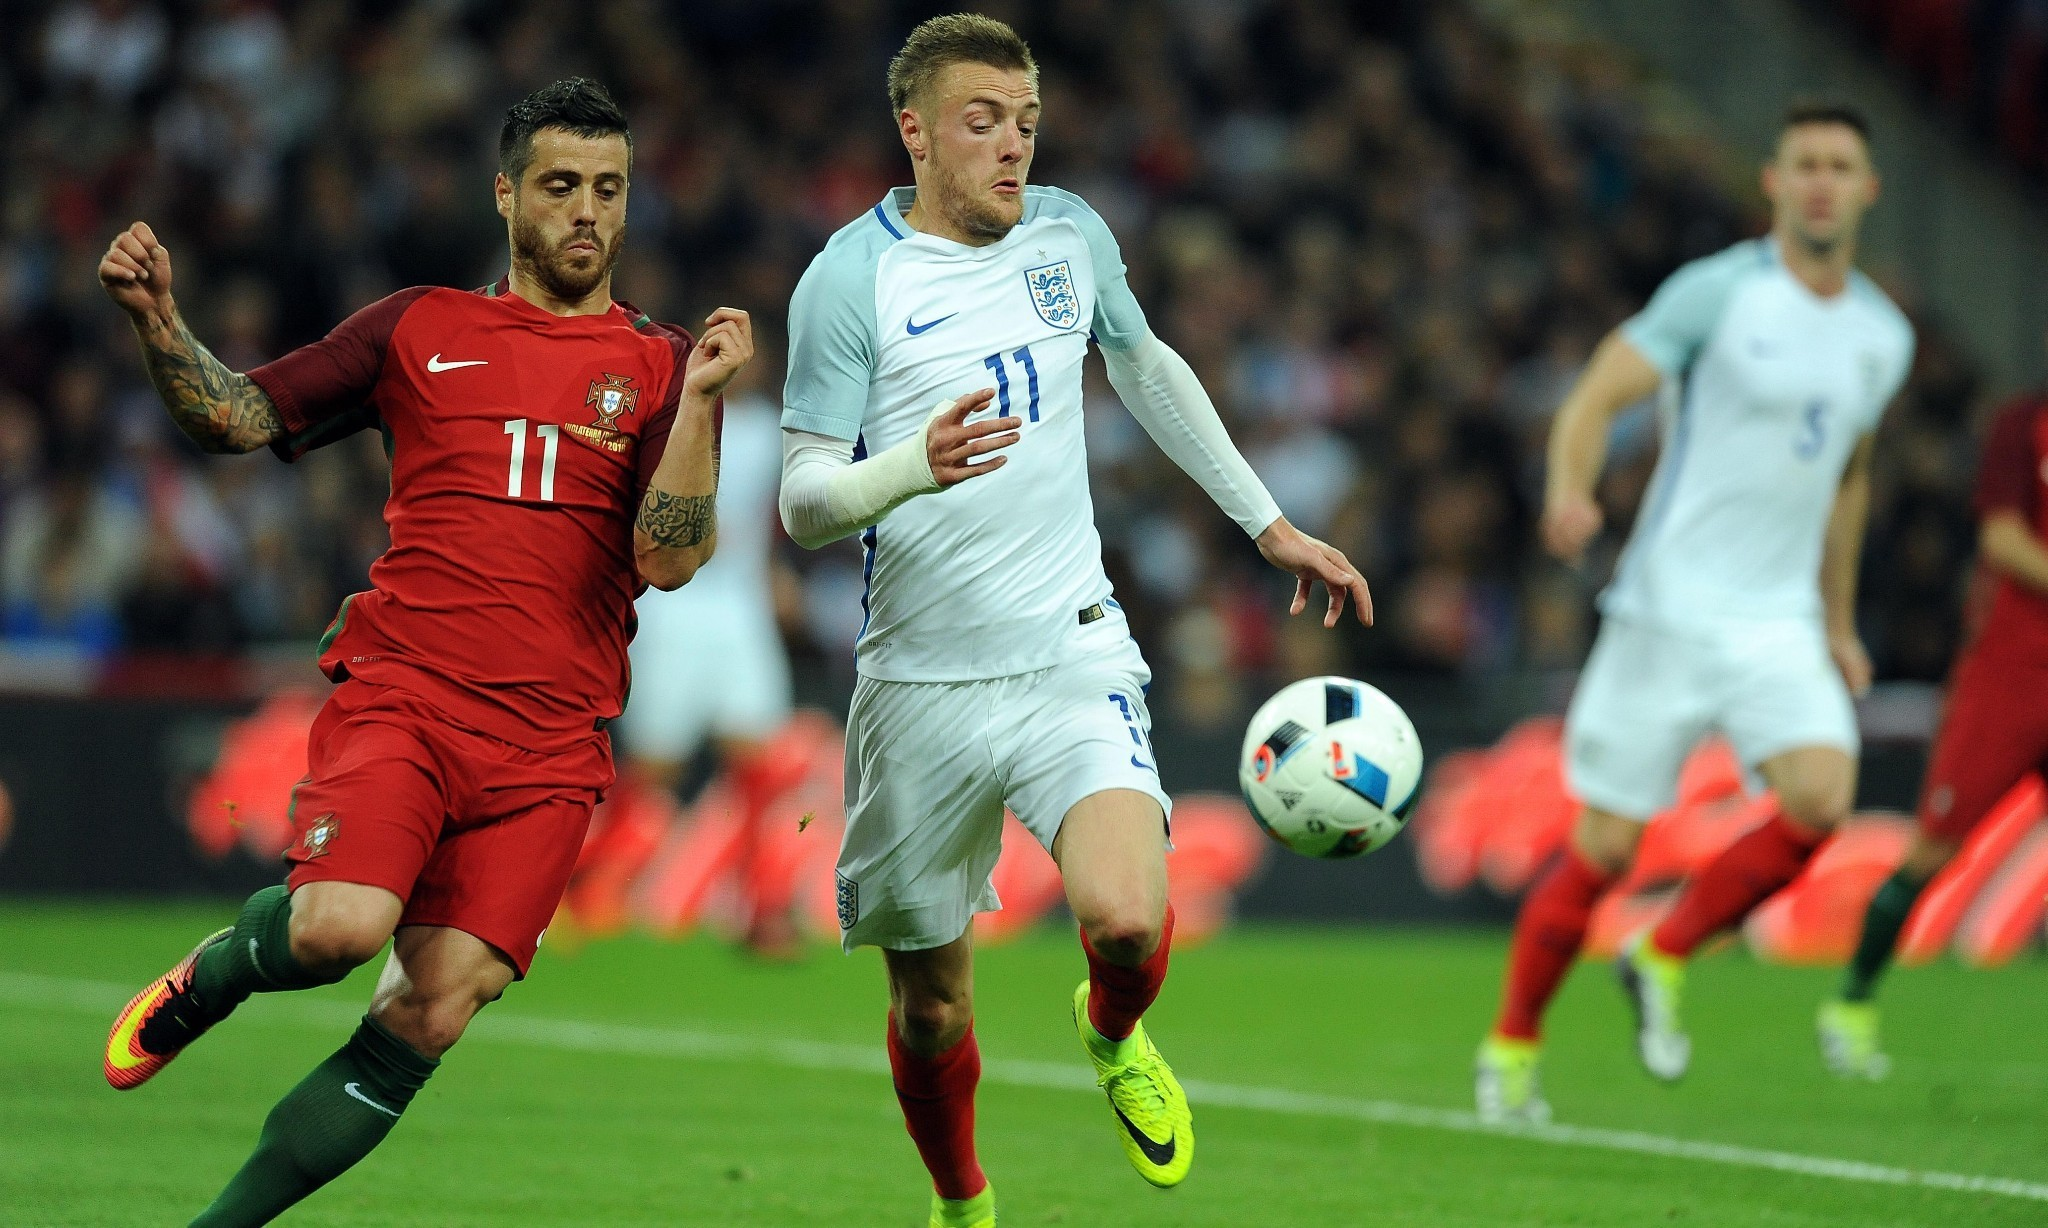 Jamie Vardy's proposed move to Arsenal may not be the fairytale ending